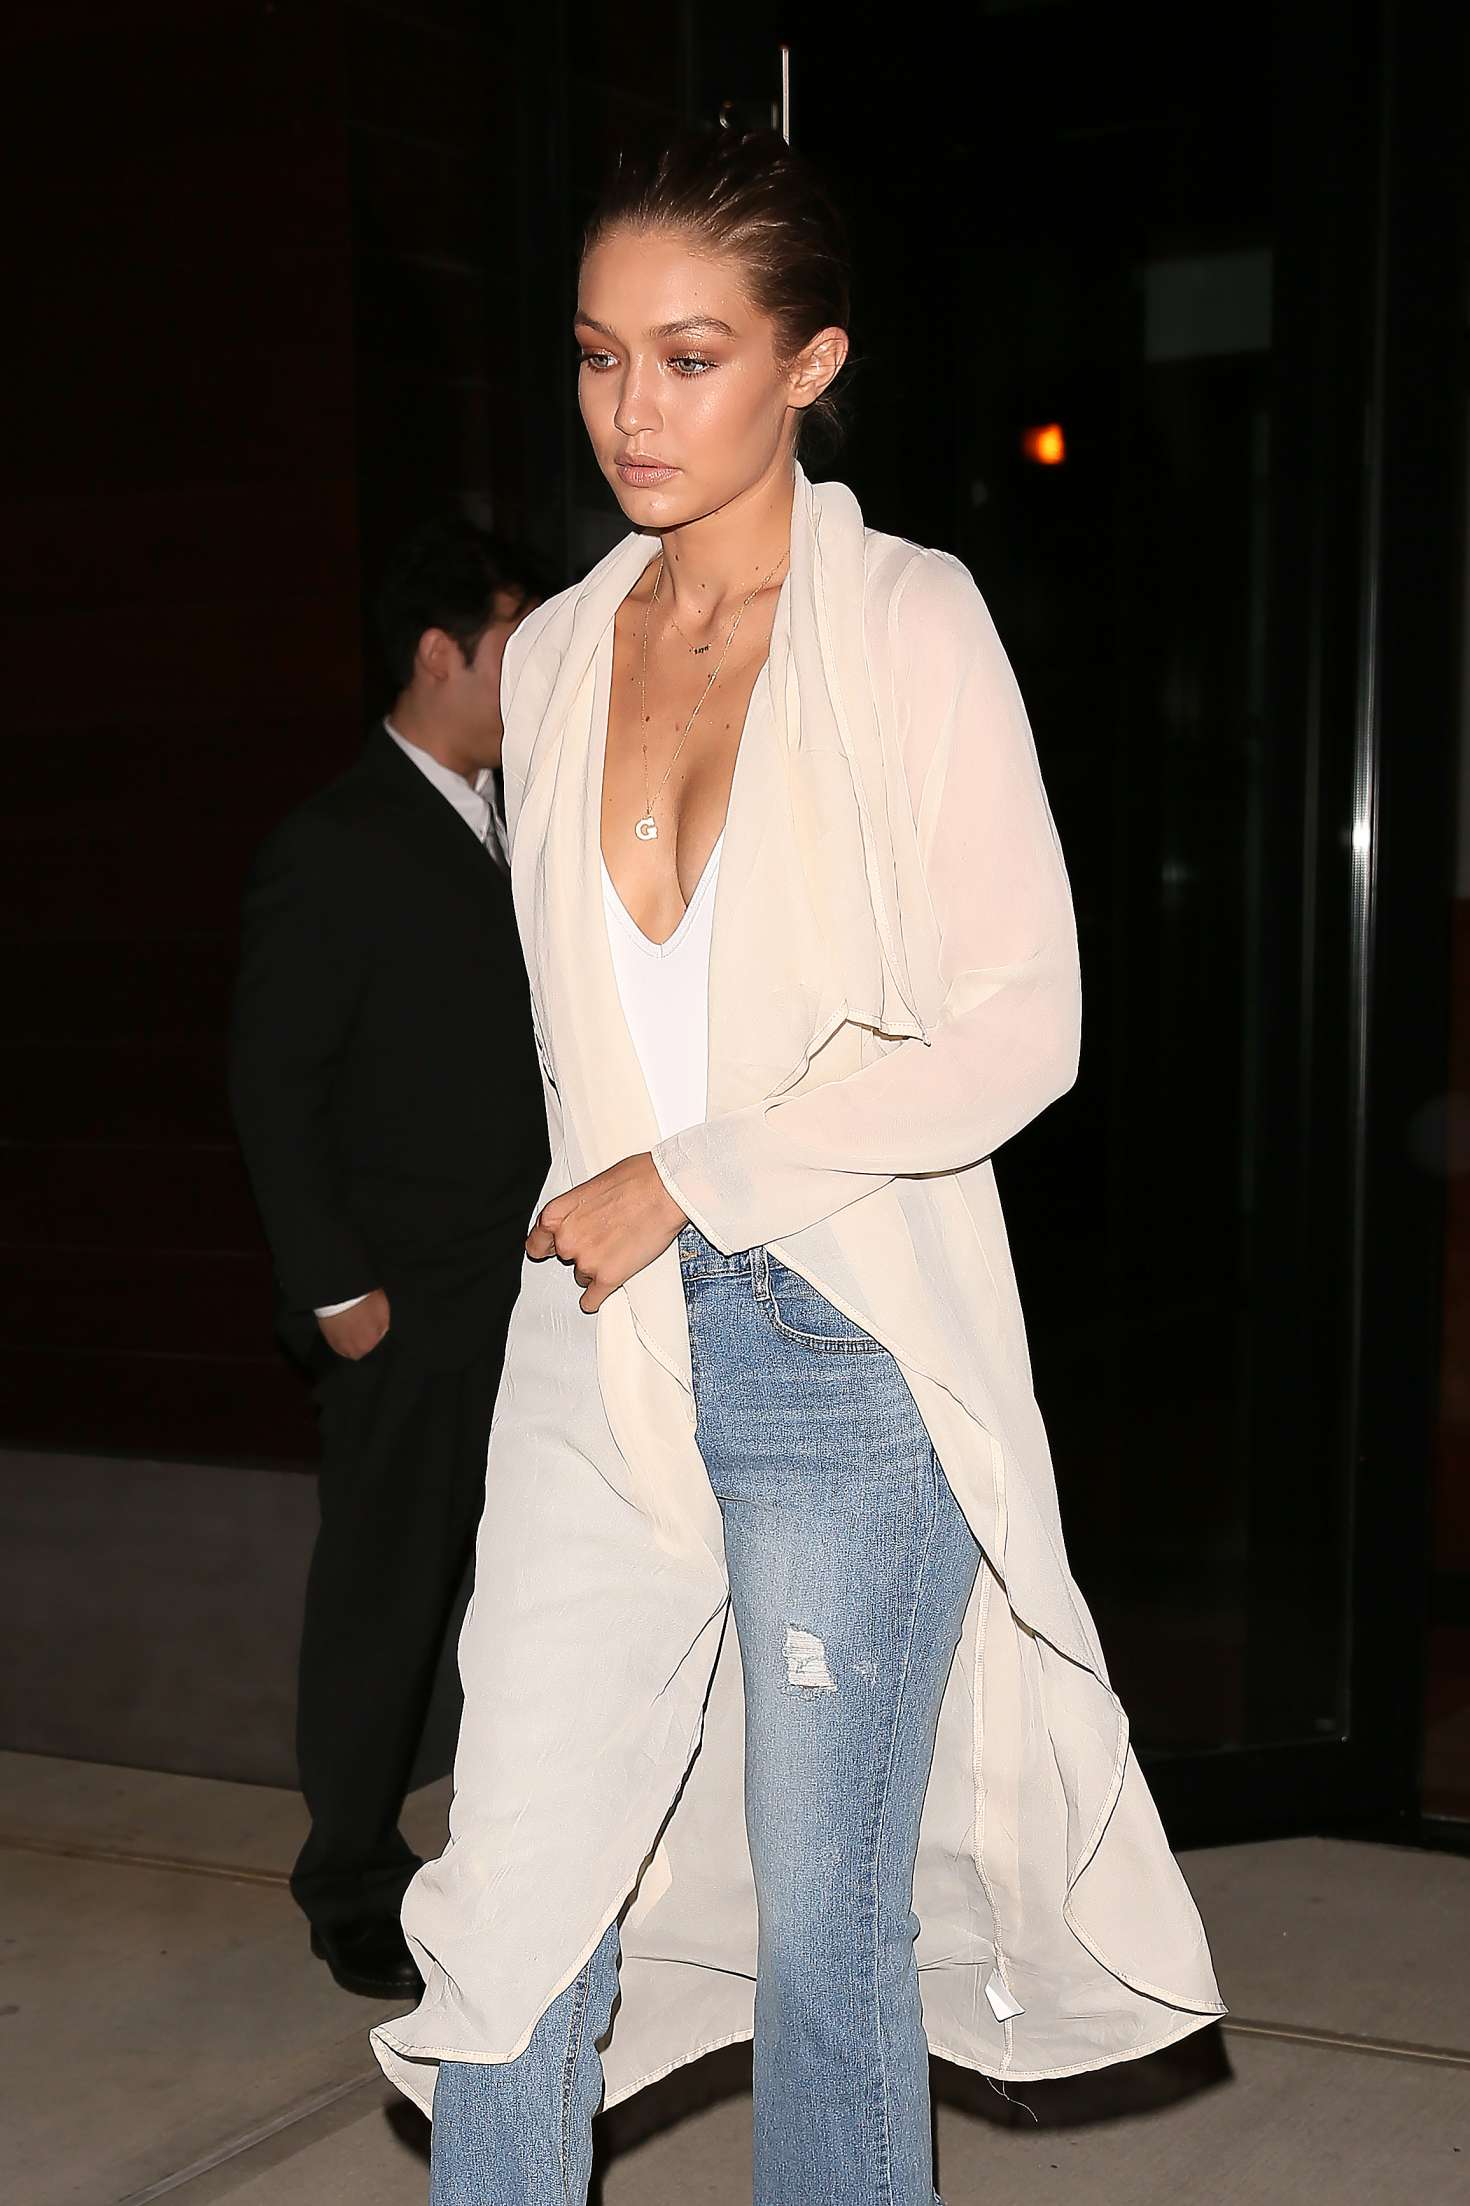 Gigi Hadid in Jeans Leaving her apartment in NYC